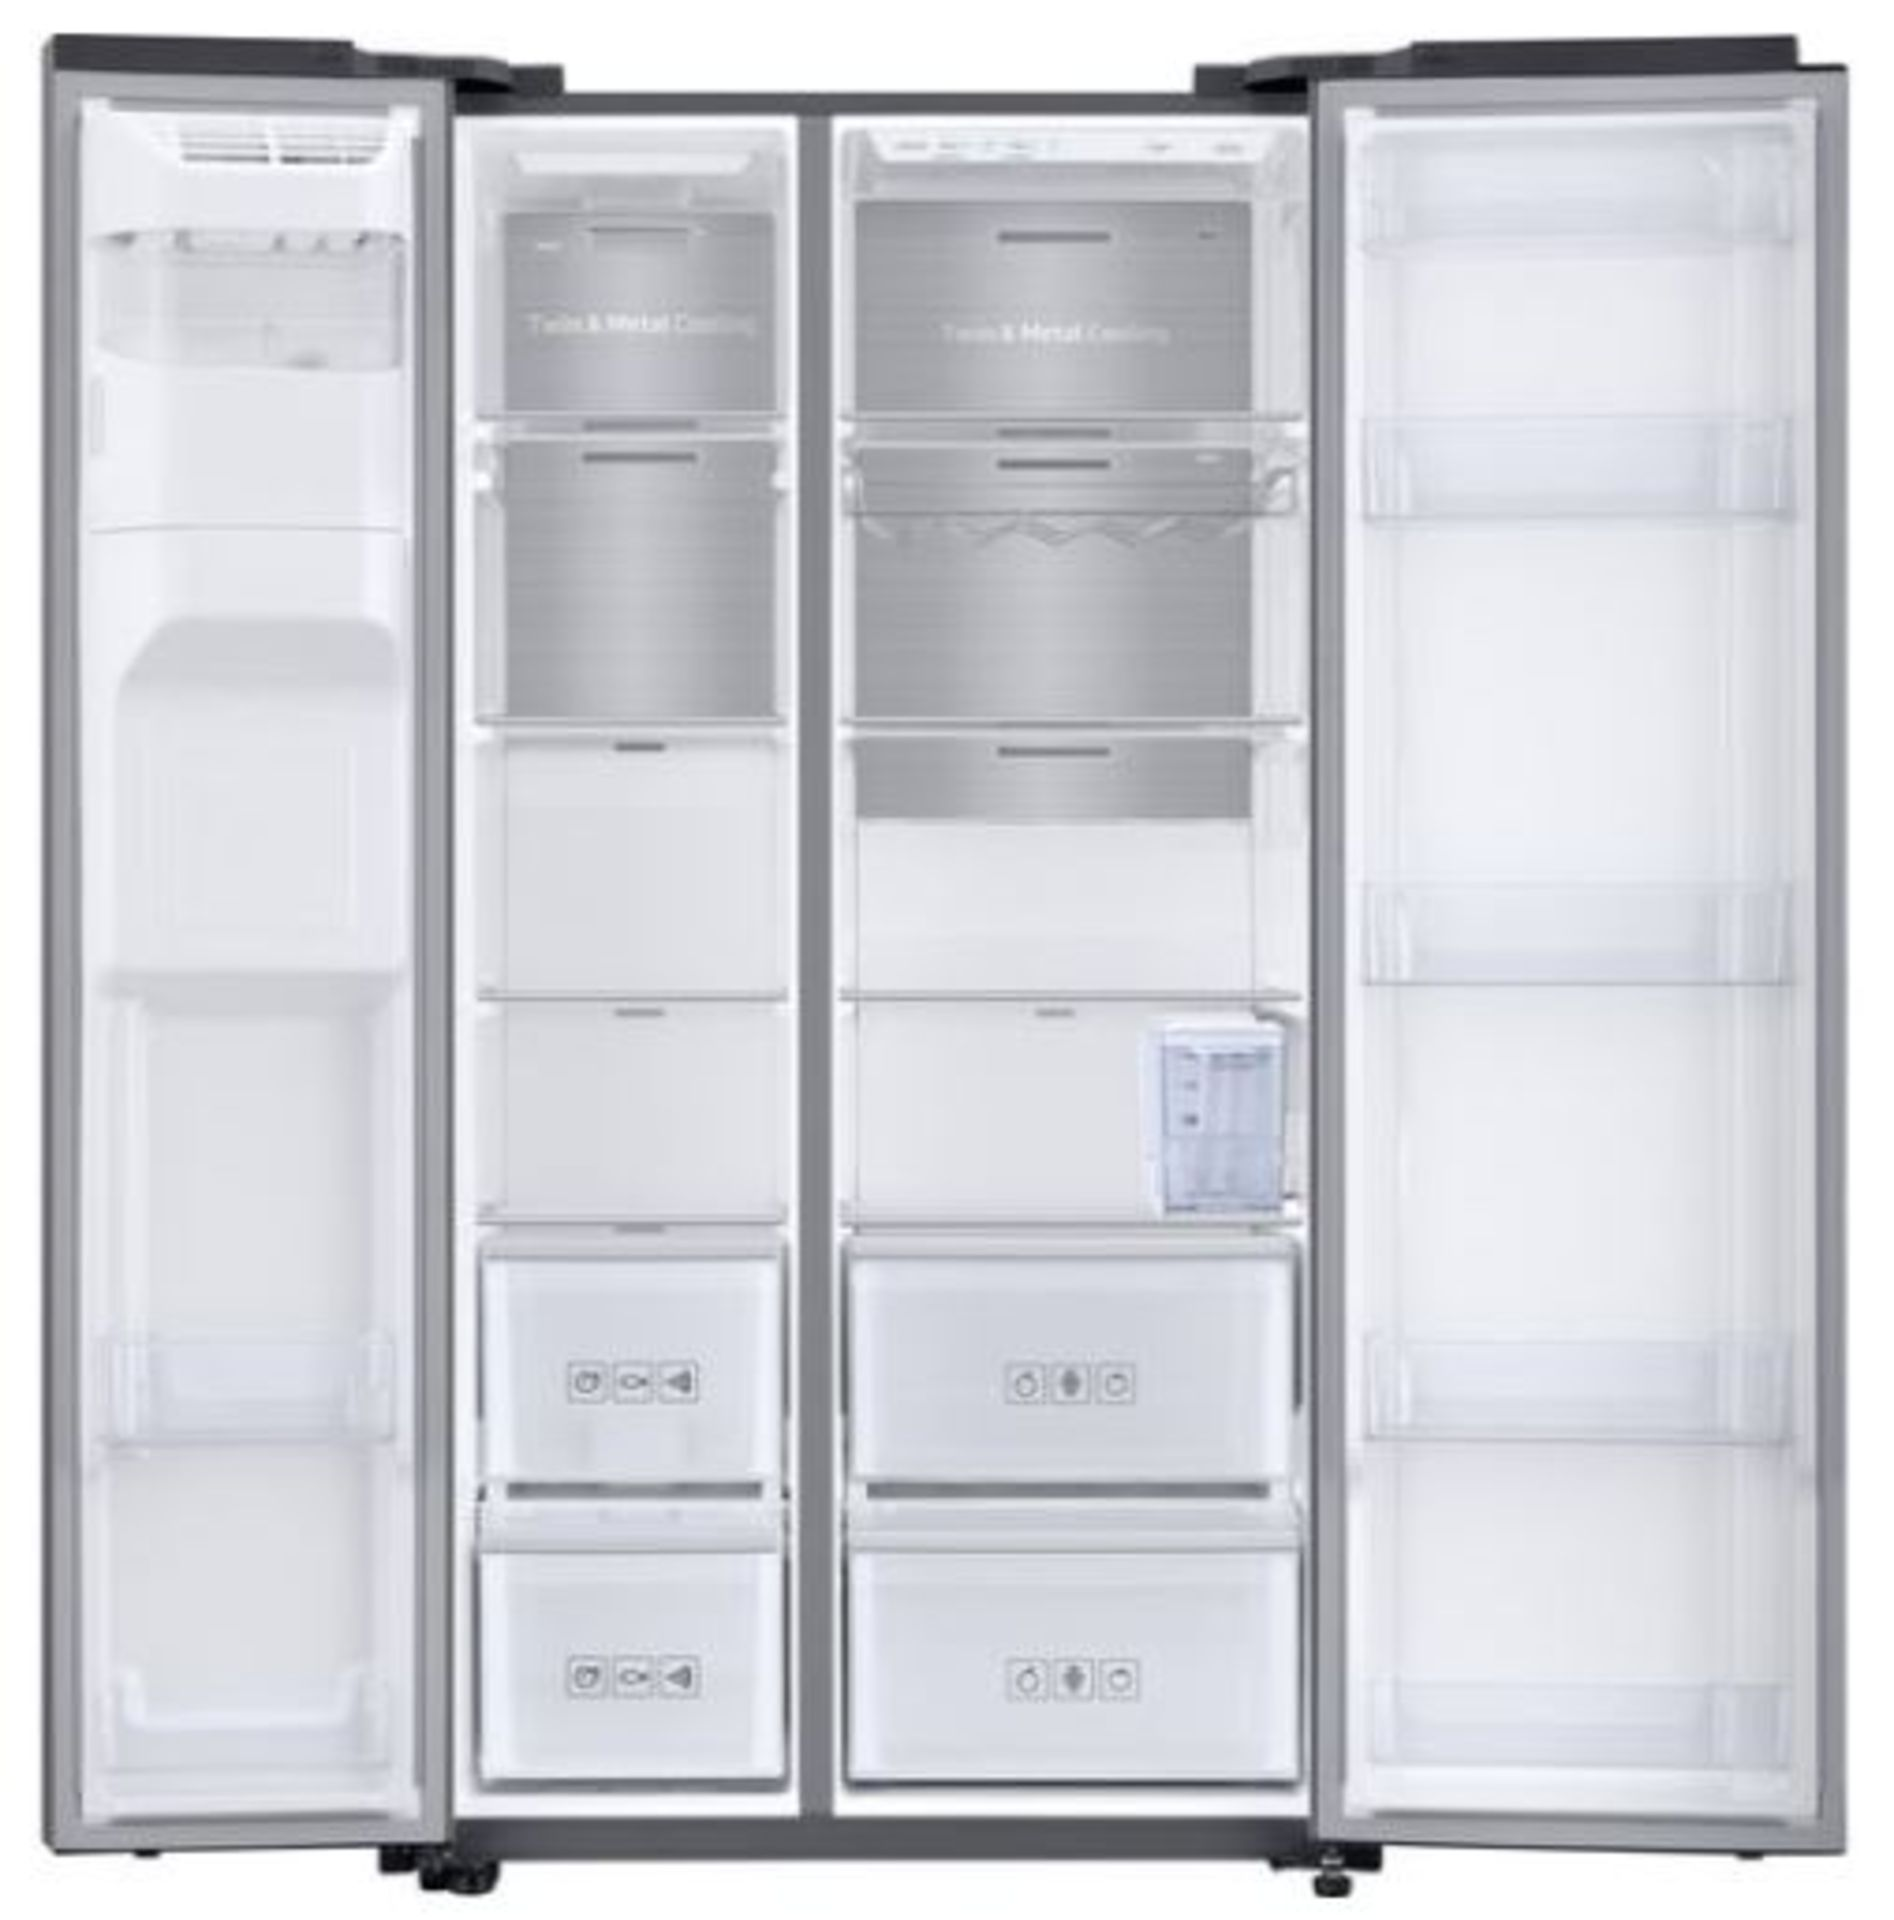 Pallet of 1 Samsung Water & Ice Fridge freezer. Latest selling price £1,799.99 - Image 3 of 10